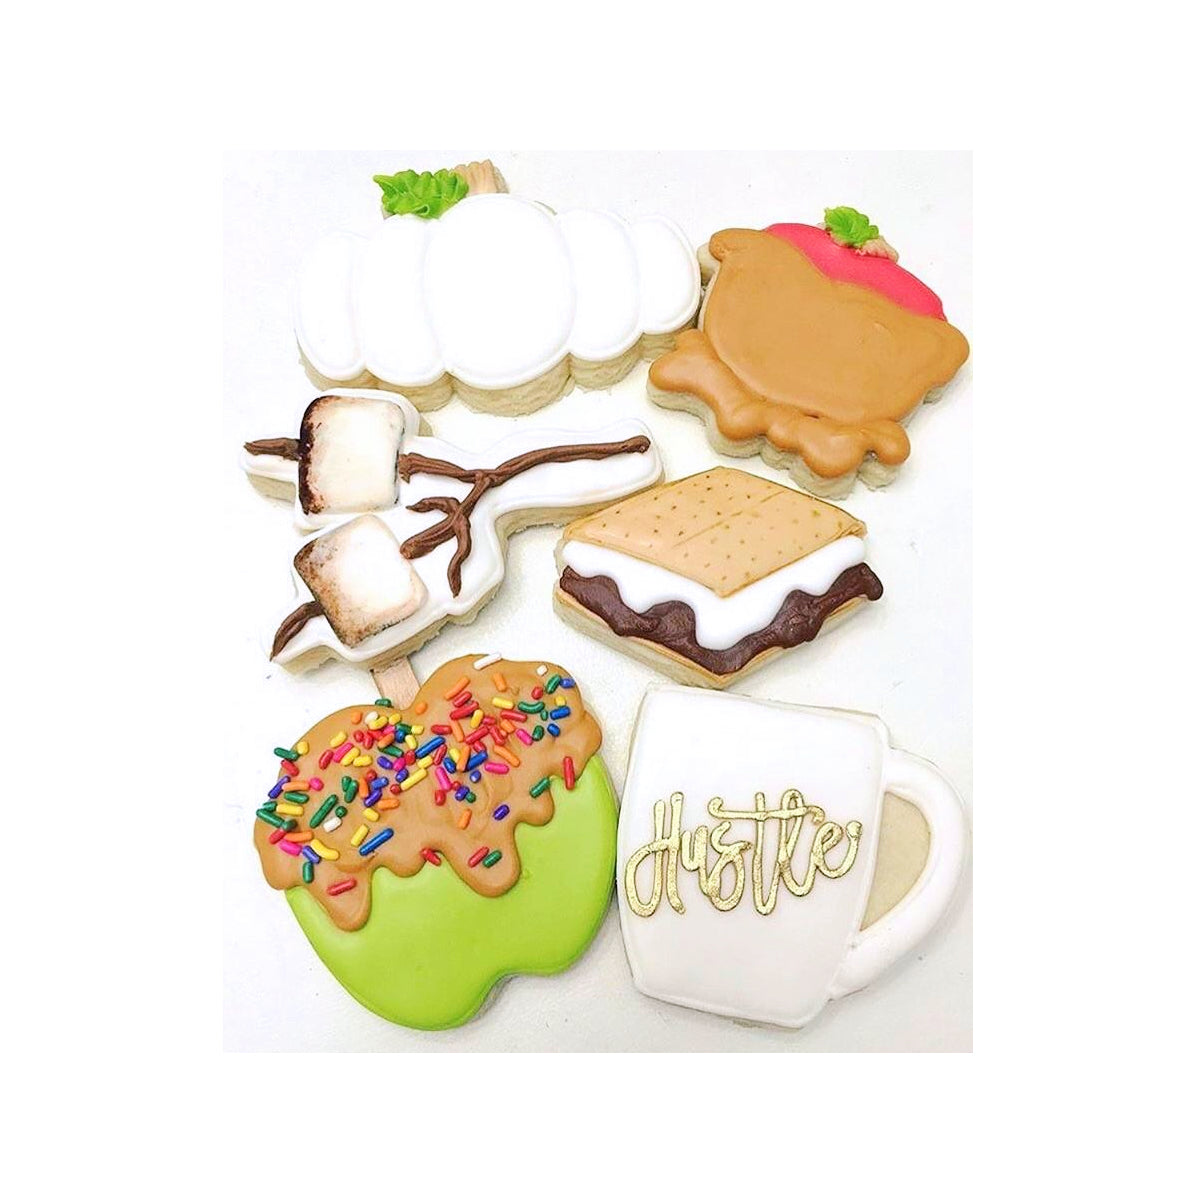 Designer Outdoor Fall Cookie Cutter Set | www.bakerspartyshop.com